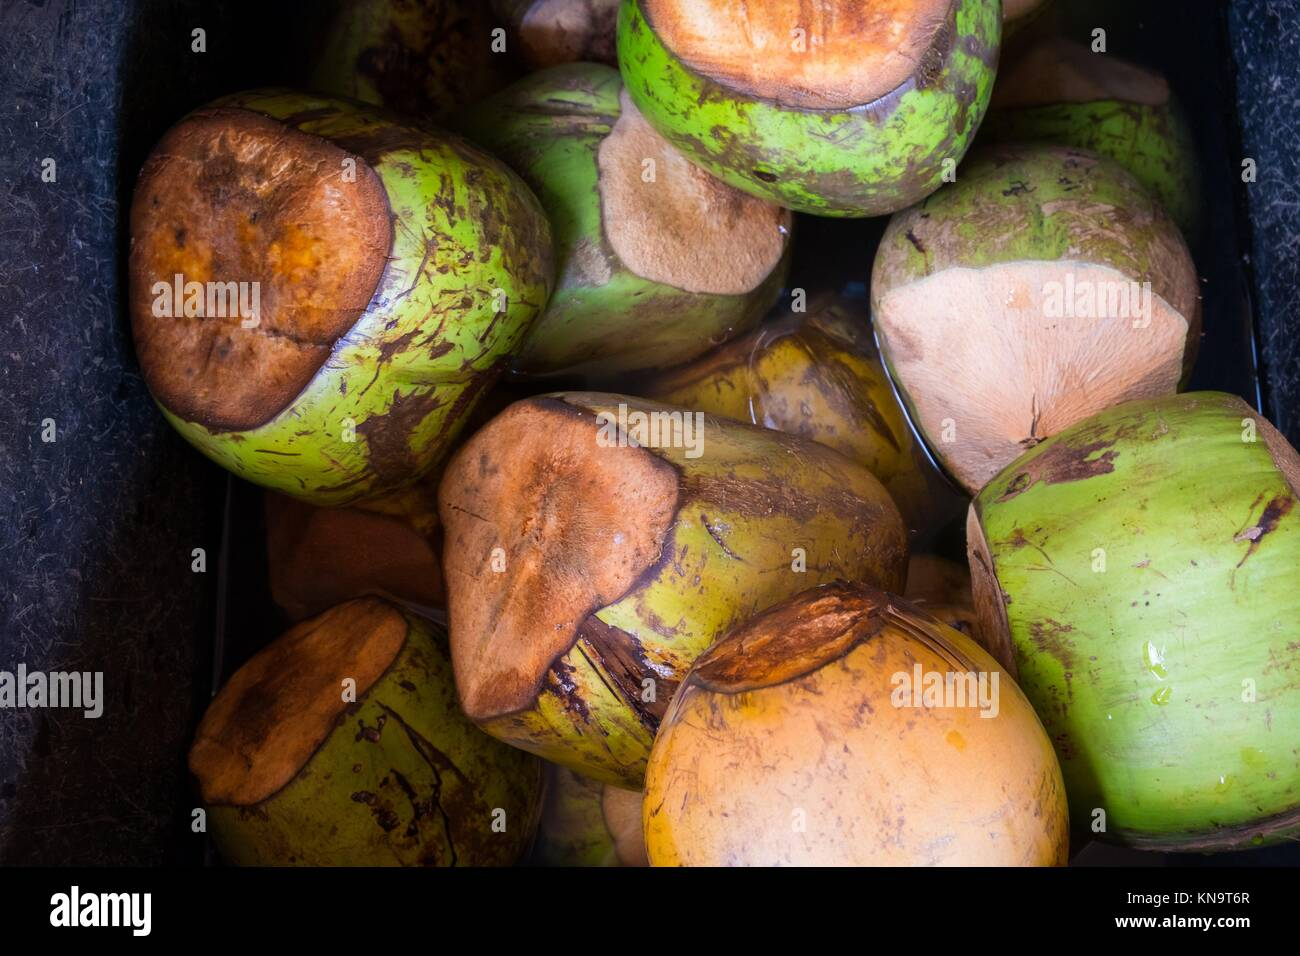 Farmer's market on the North Shore of Oahu Hawaii with ice cold coconuts for sale. Stock Photo